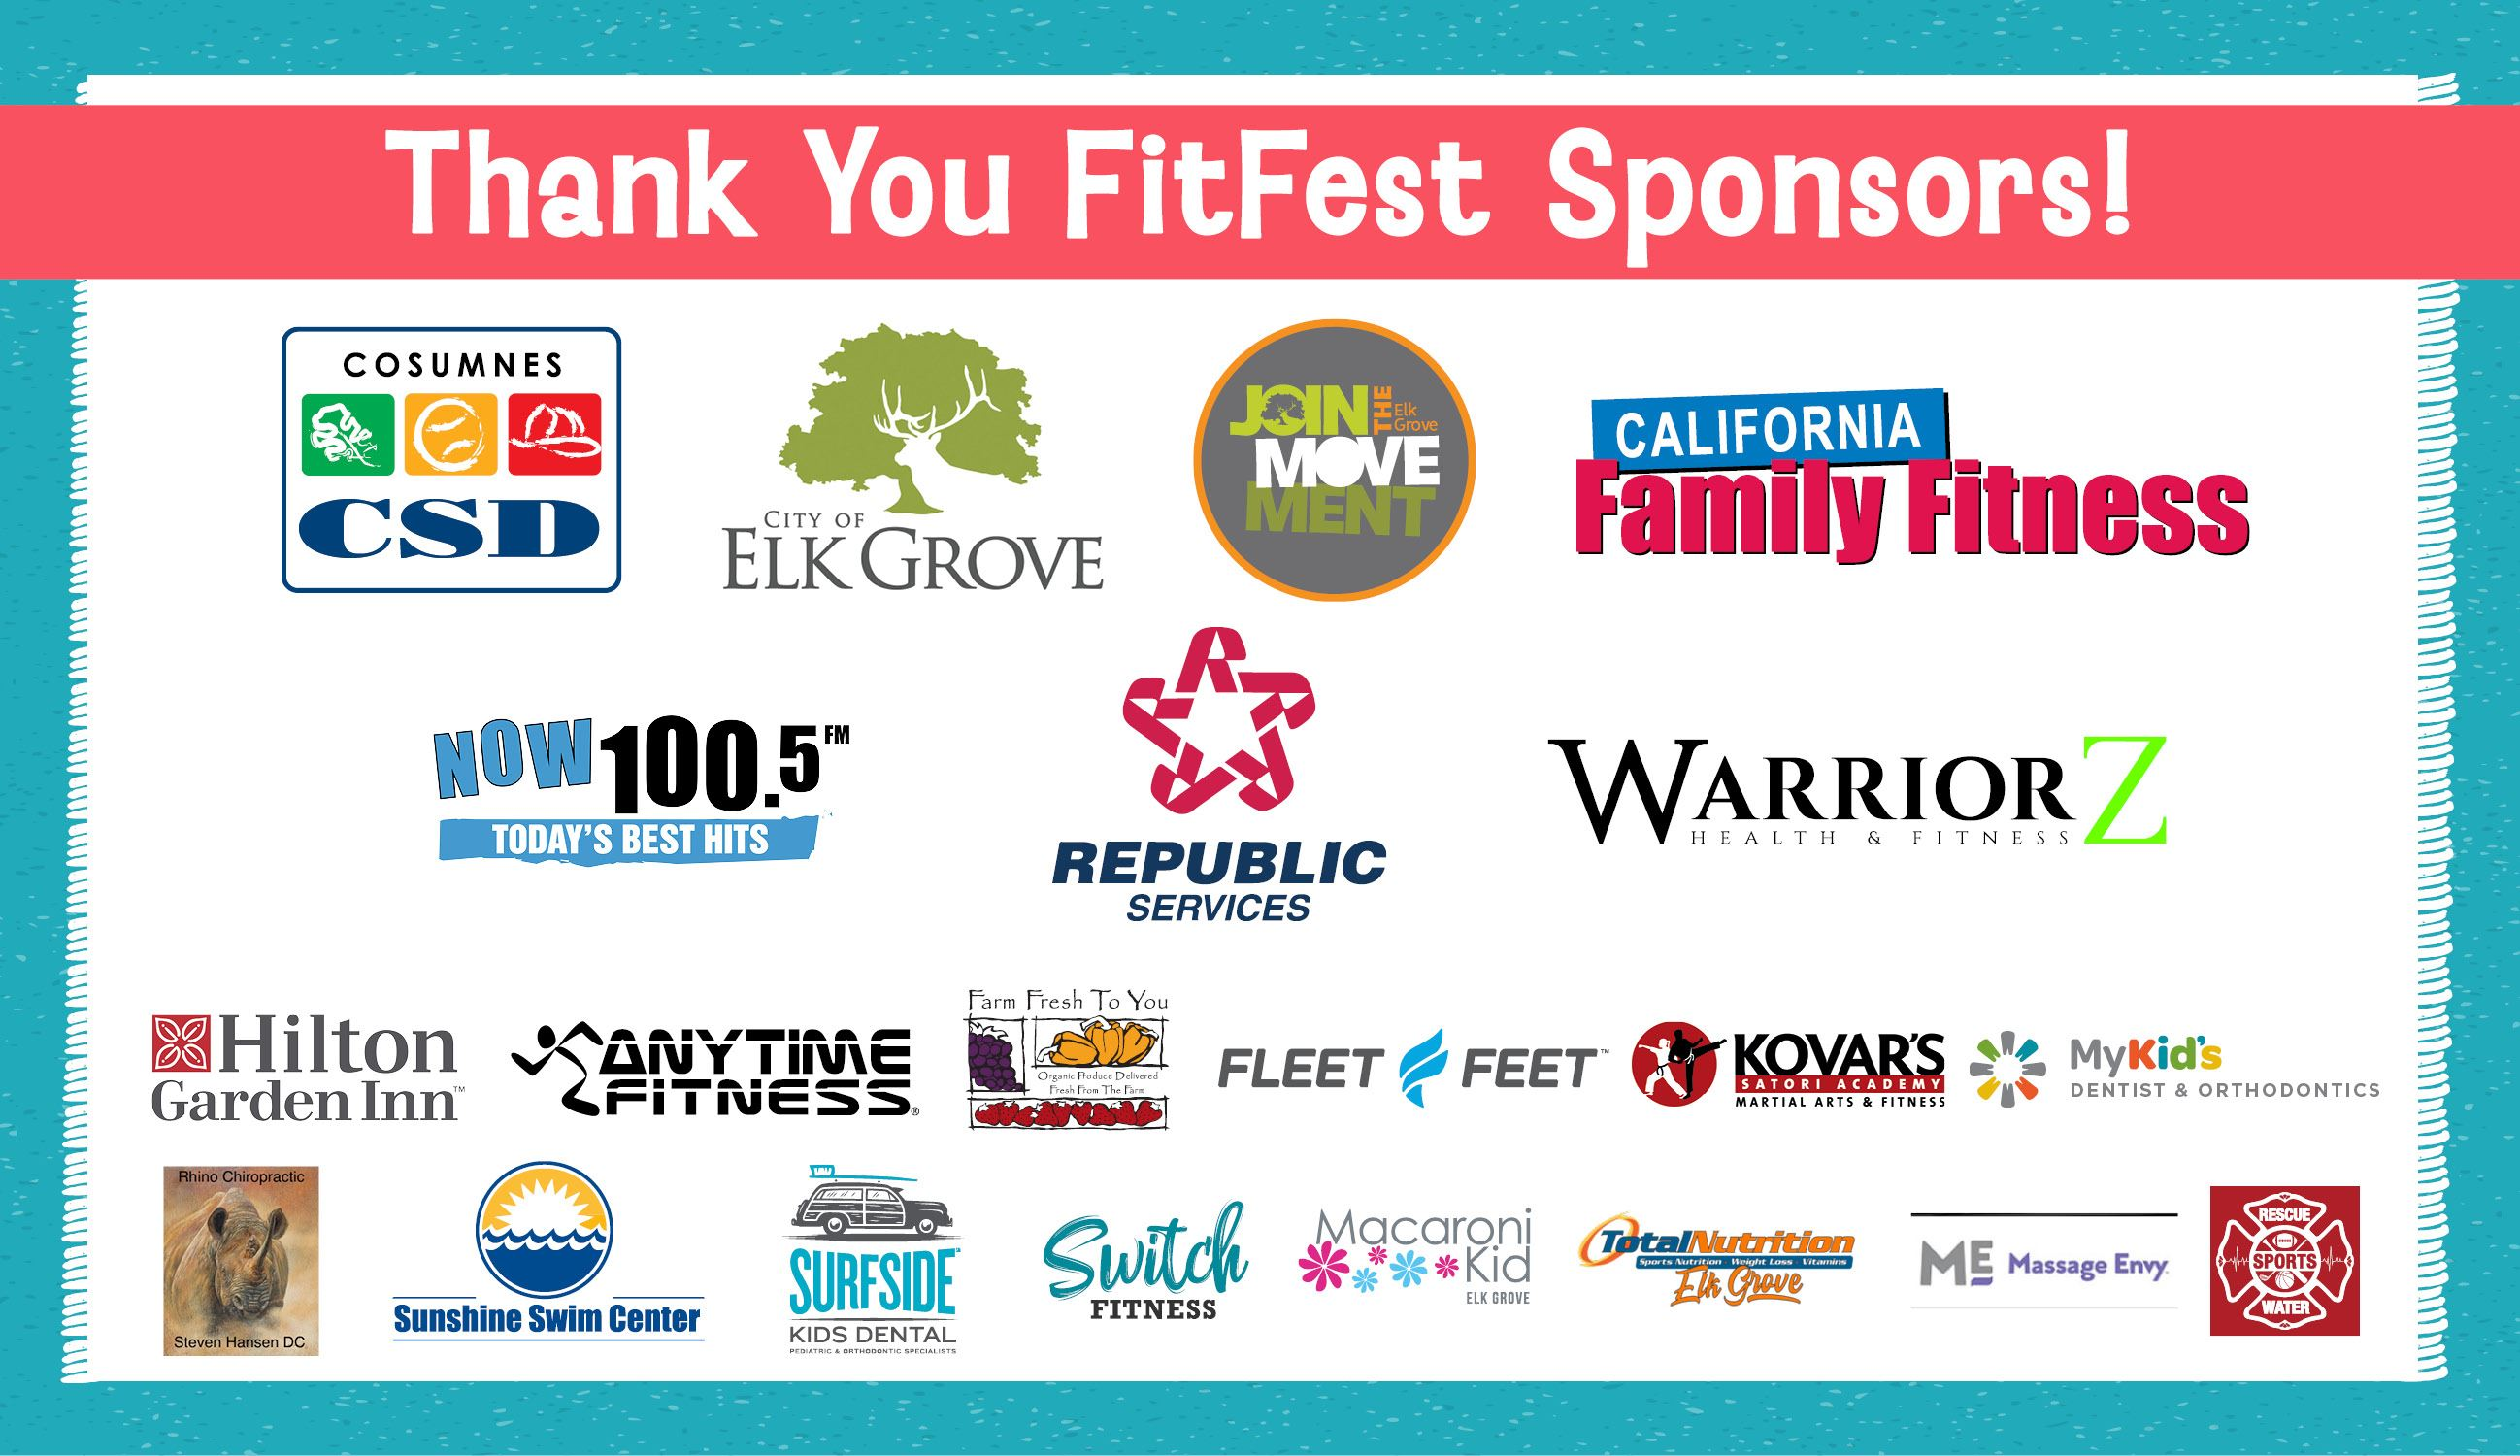 Thank you FitFest Sponsors Image